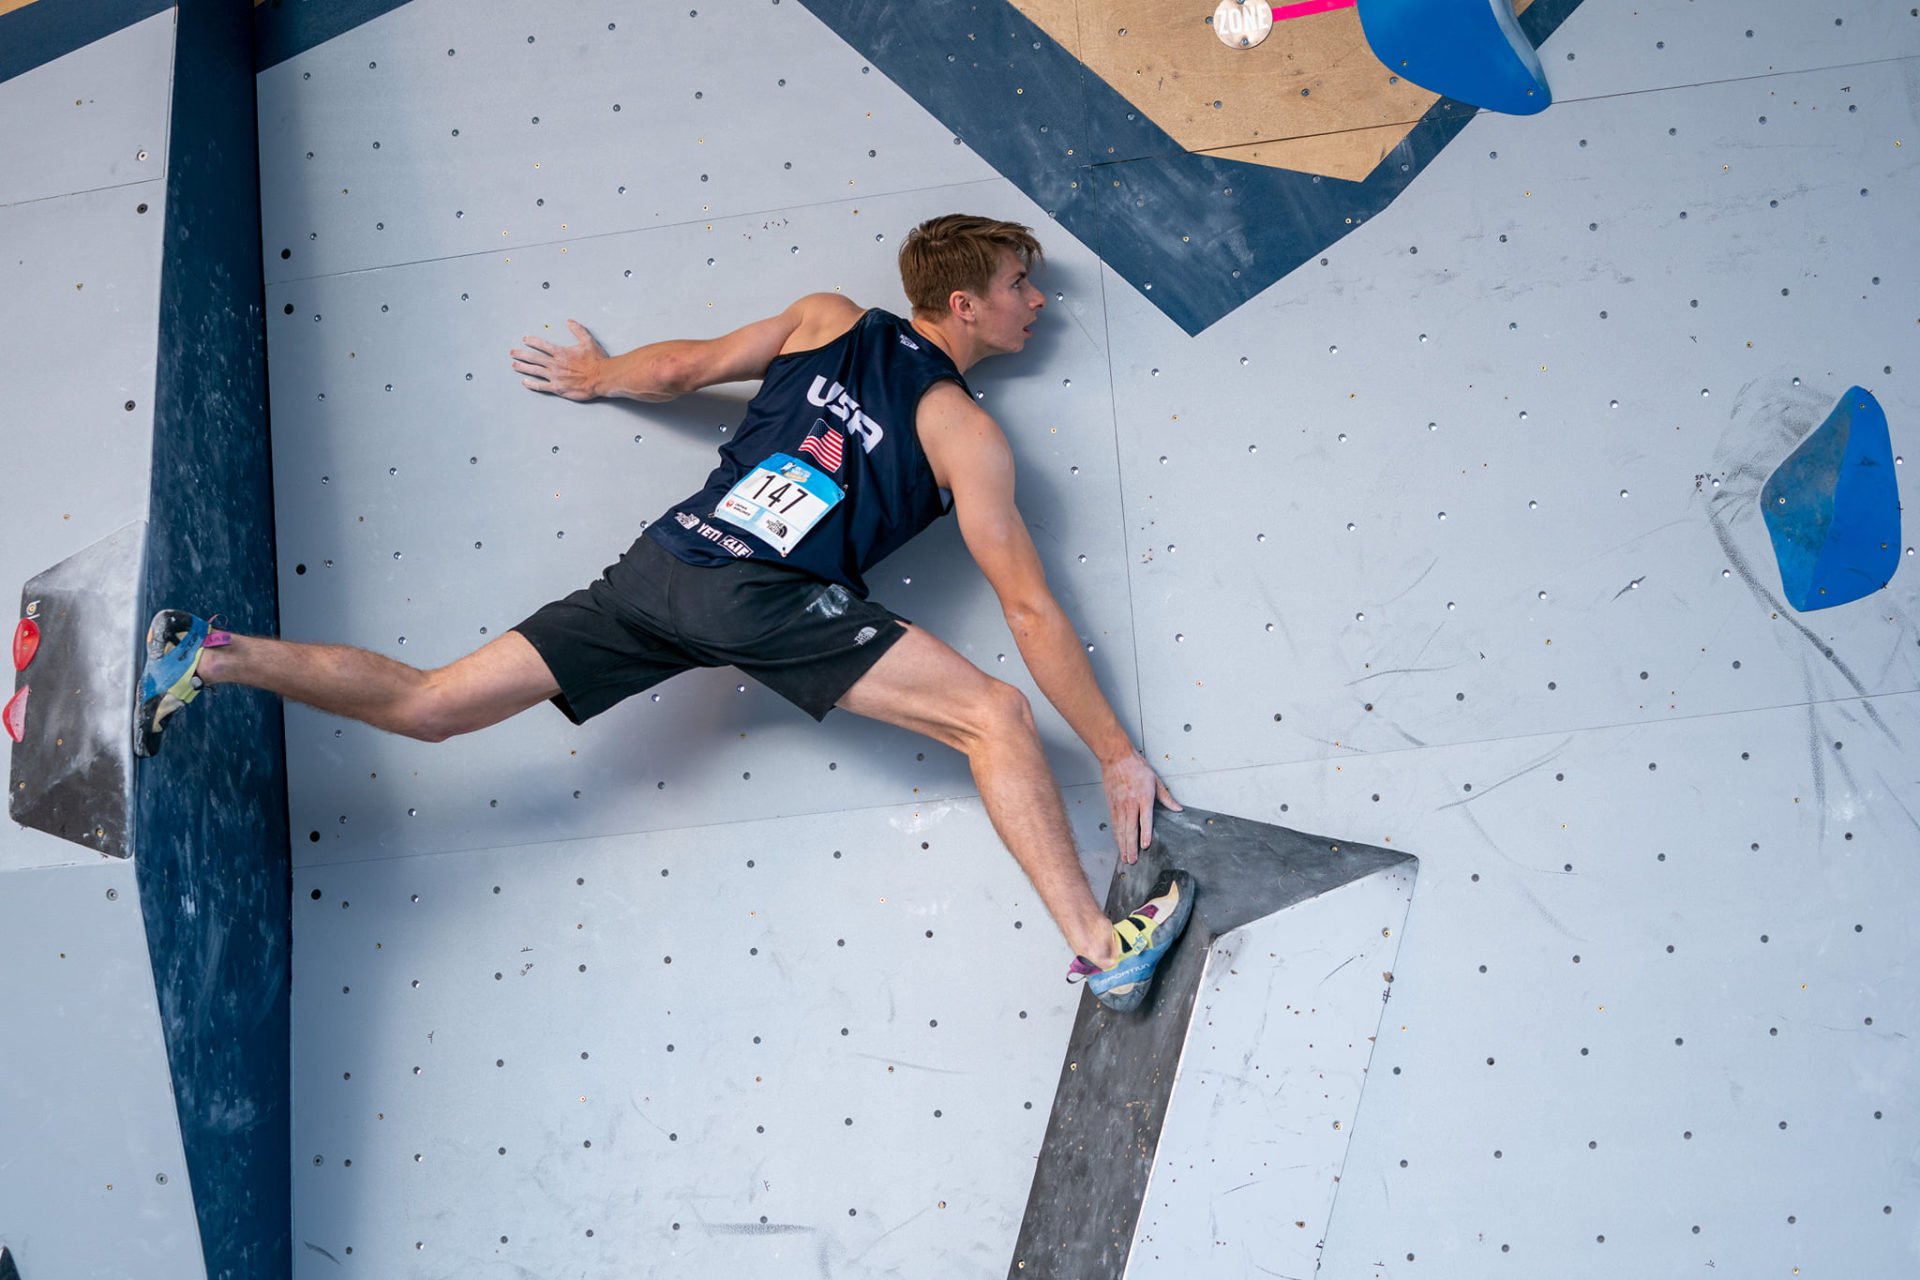 Male USA Climber #147 mid lunge on climbing wall